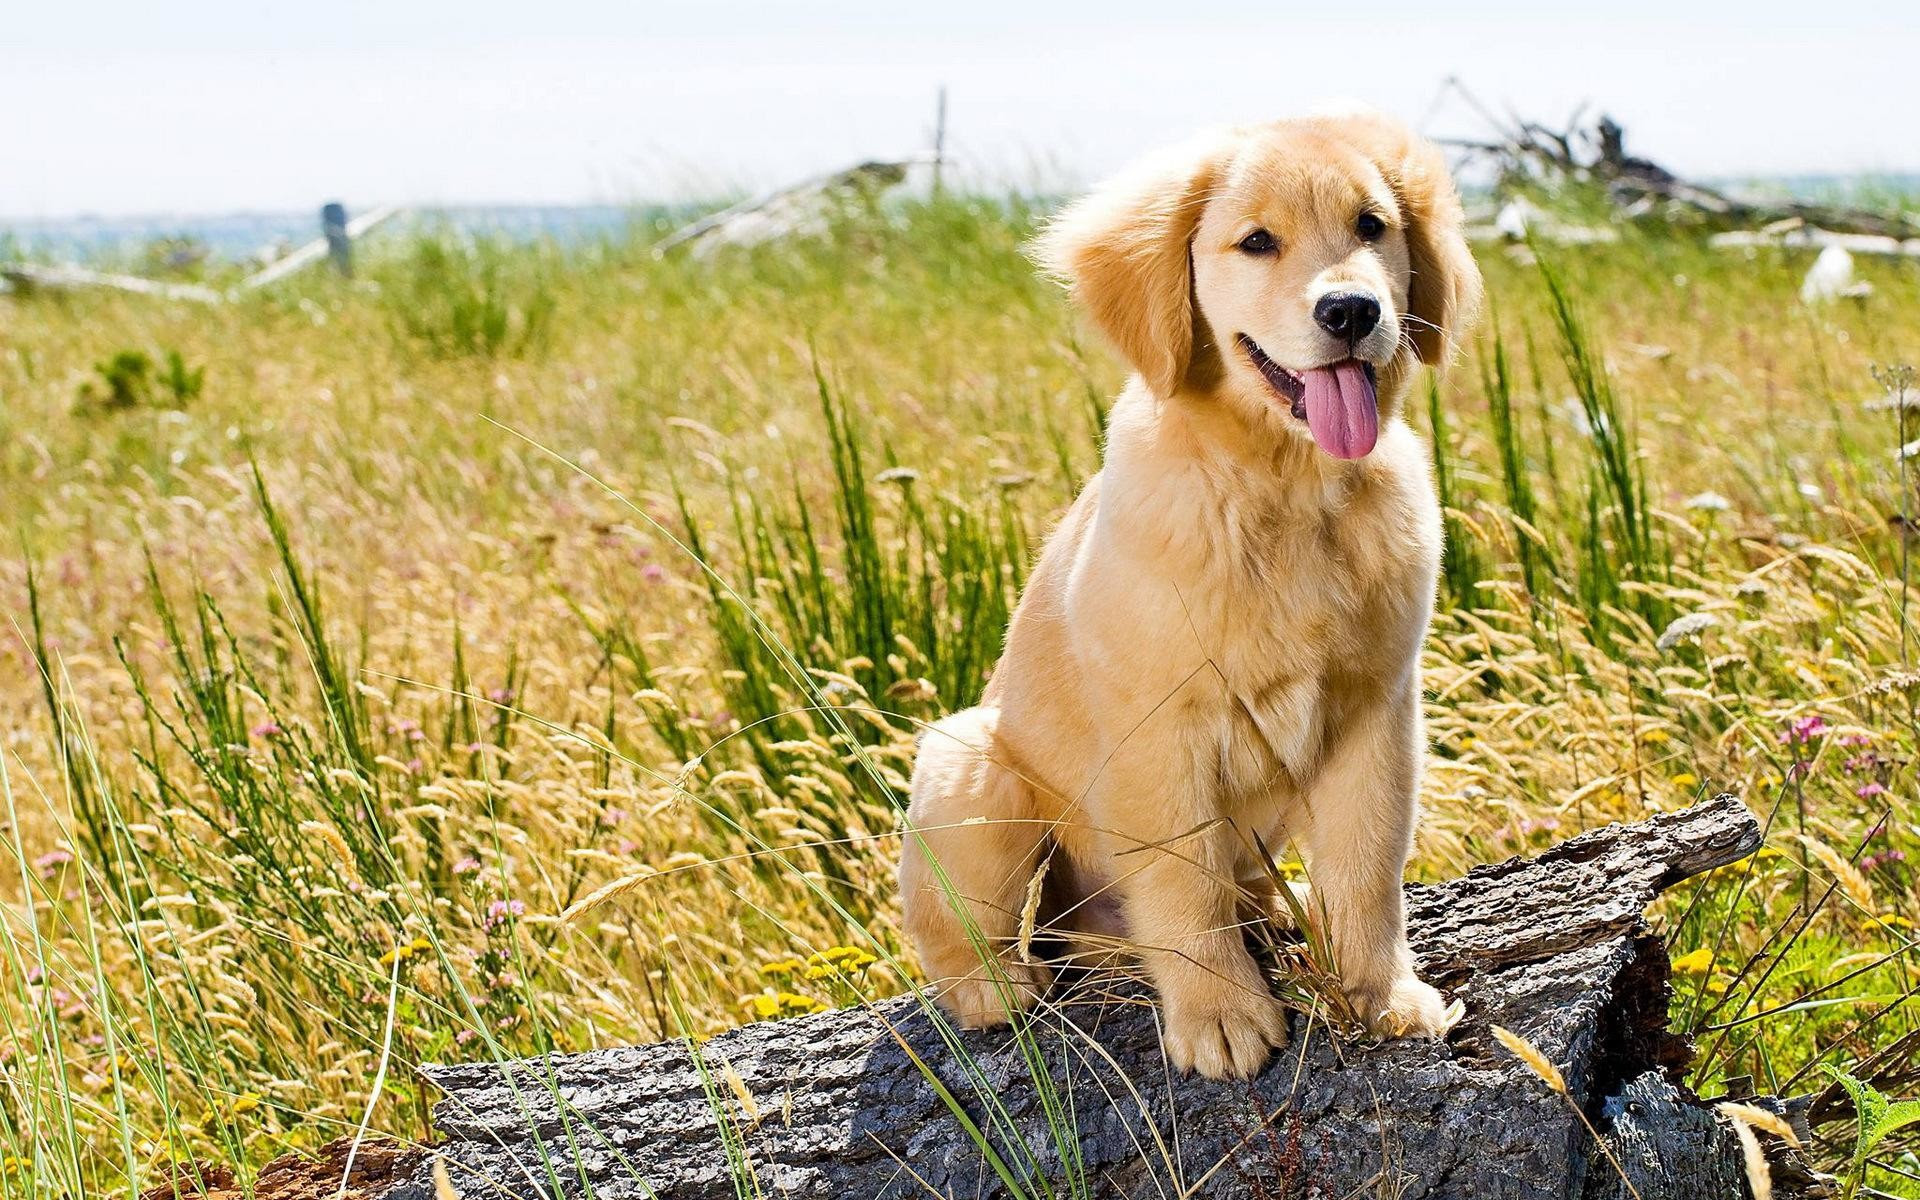 Awesome Golden Retriever Wallpaper Aesthetic Tumblr Cute Puppies Wallpaper